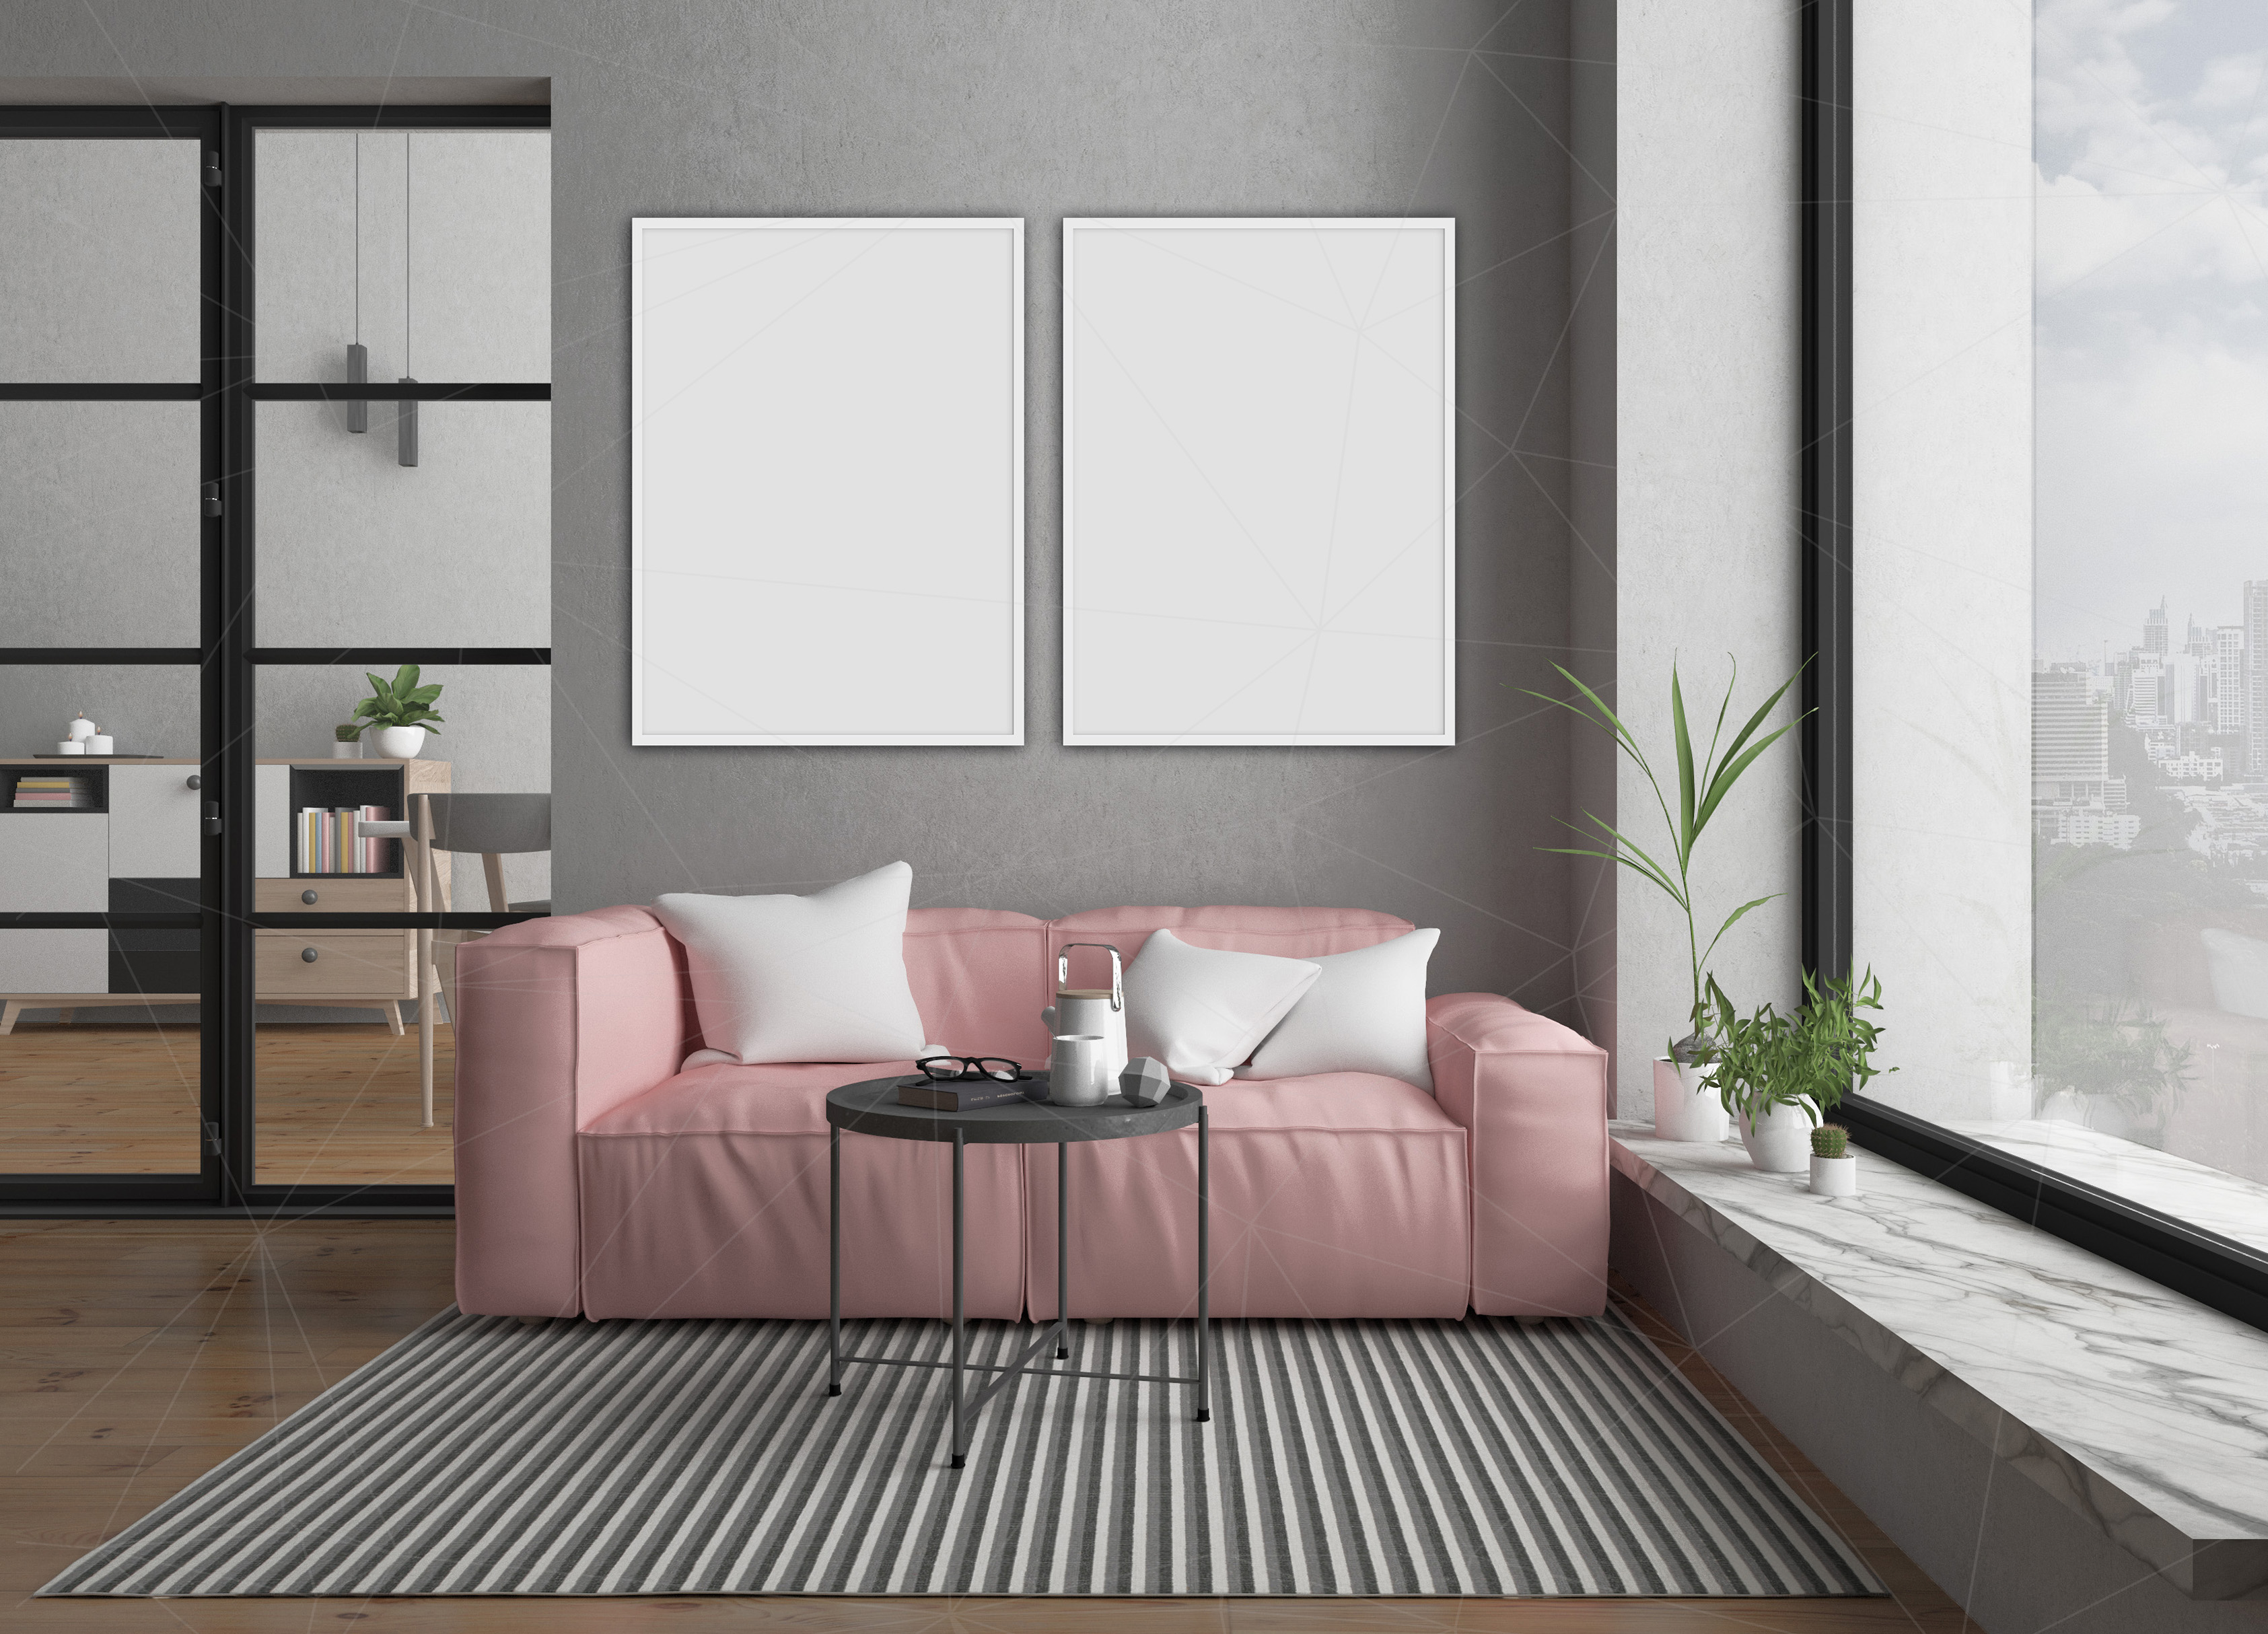 Interior mockup bundle - blank wall mock up example image 7